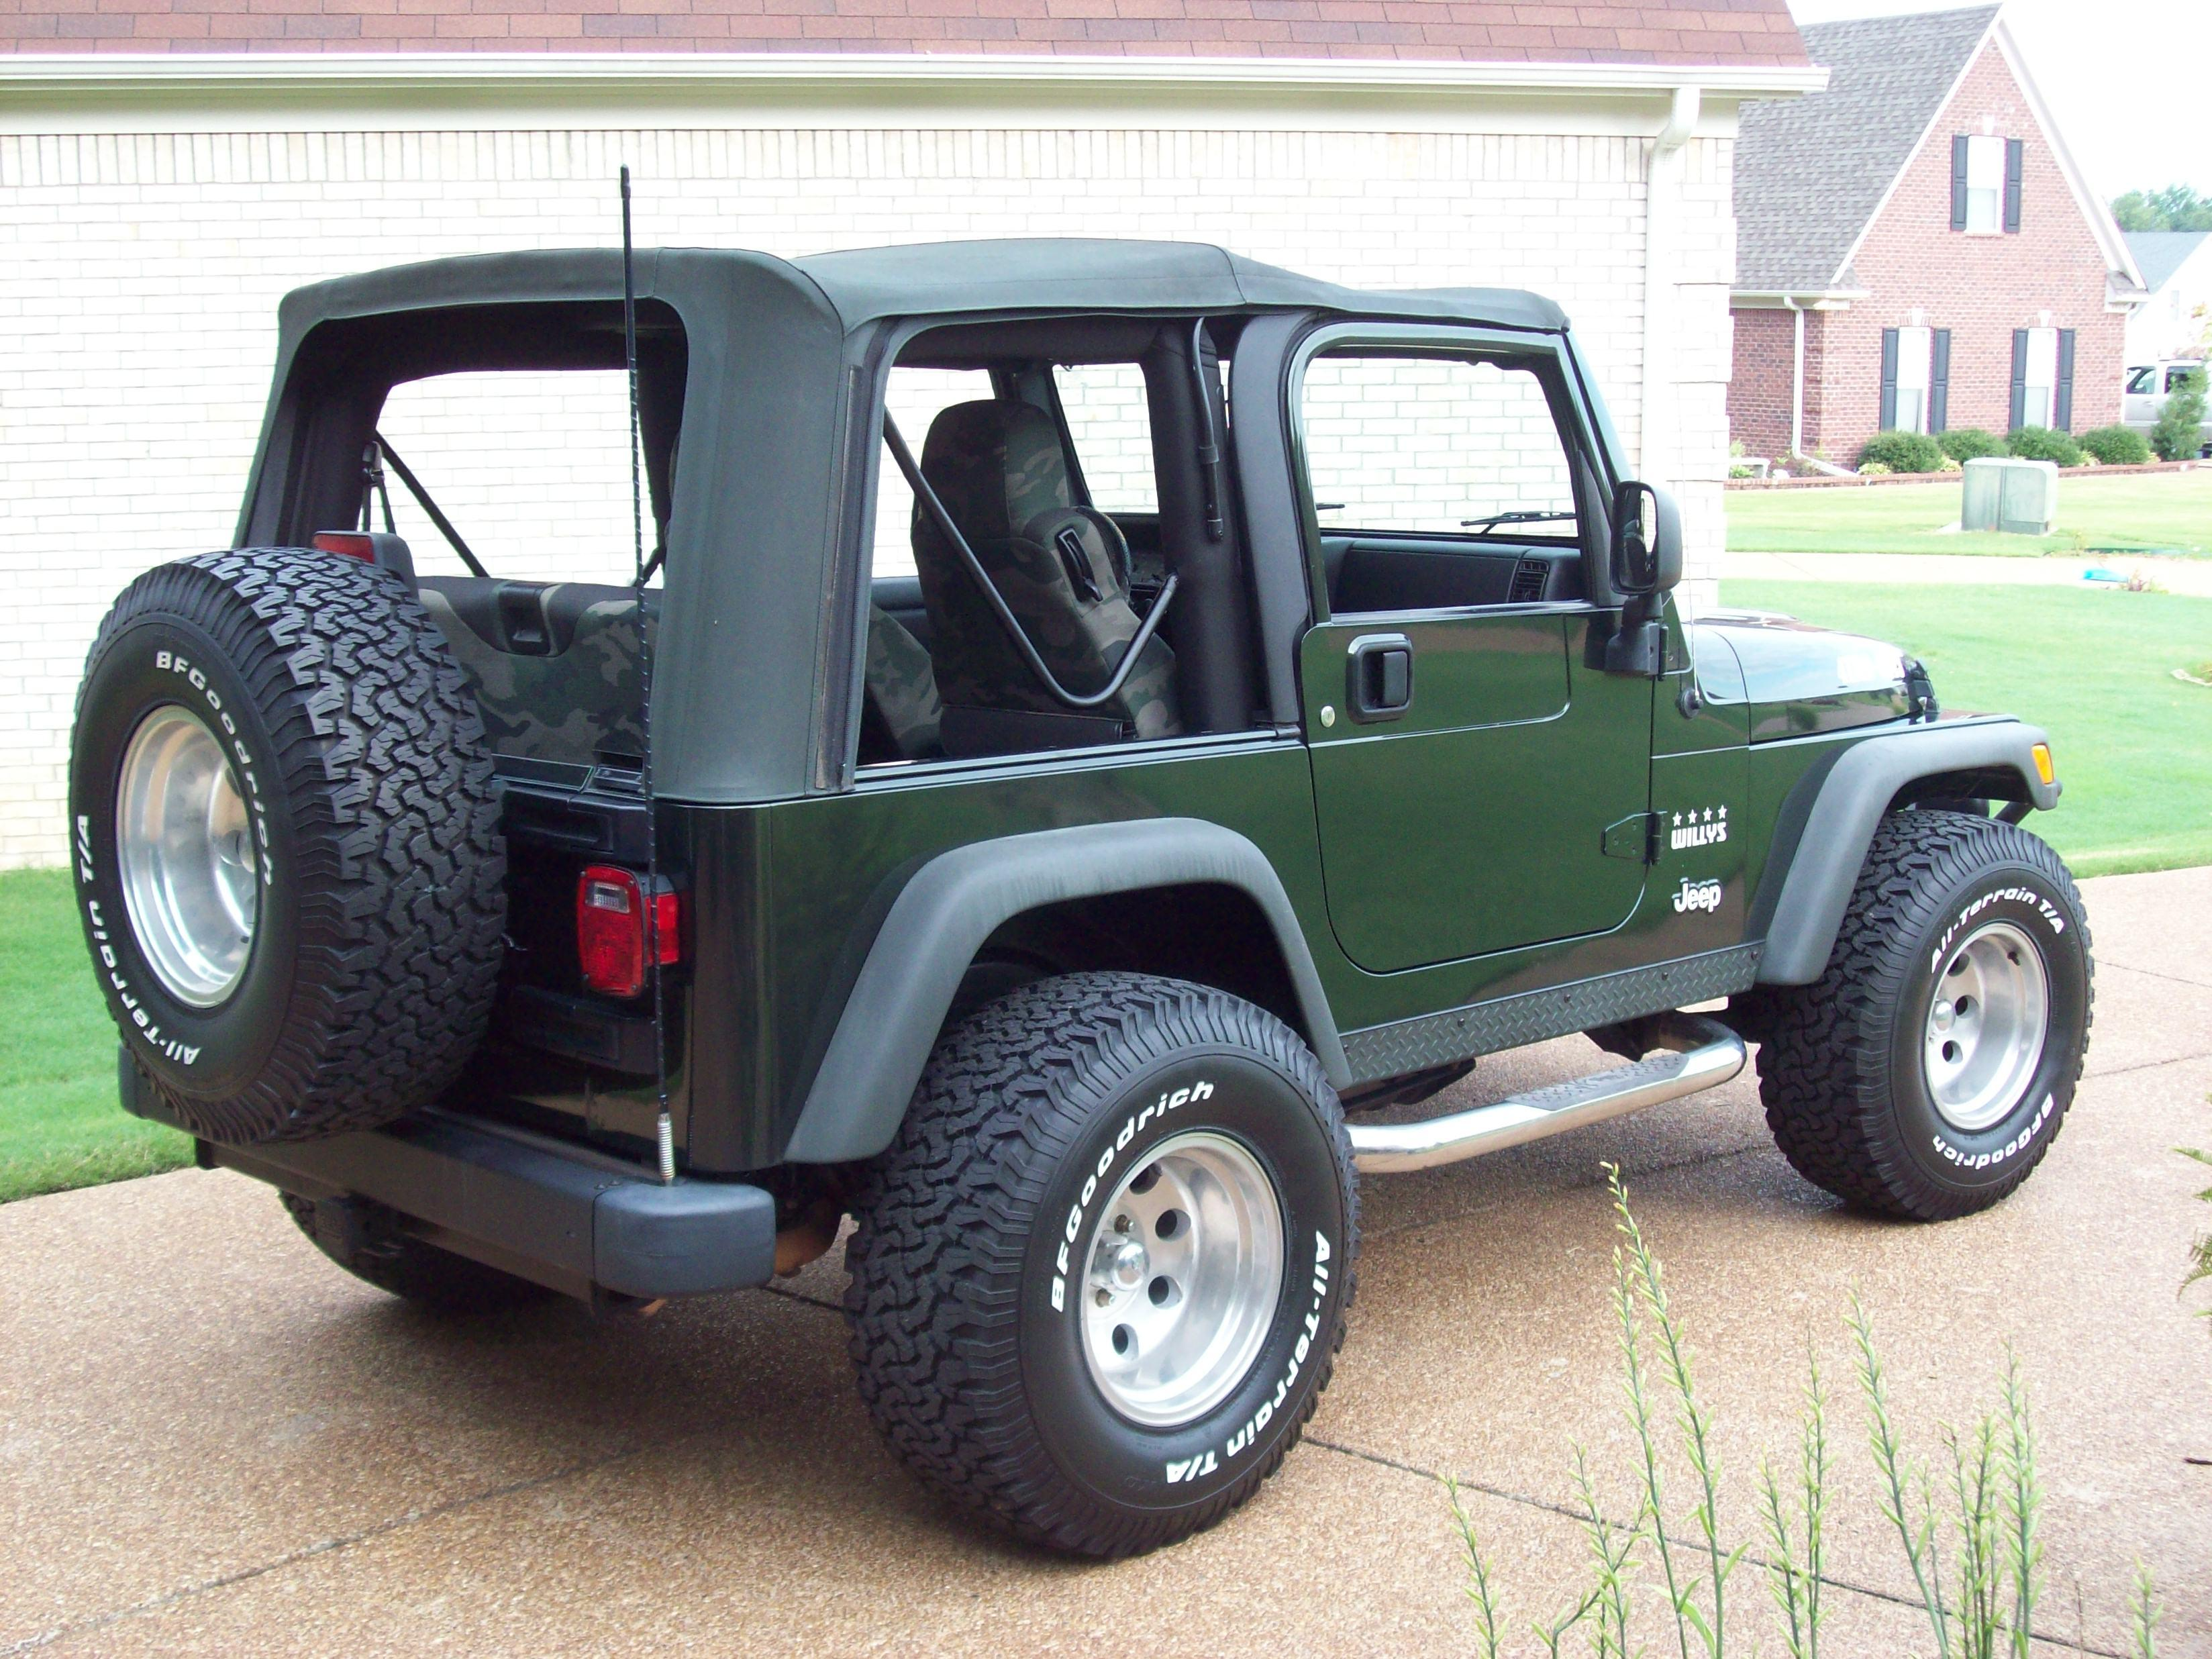 snakeem25's 2005 Jeep Willys